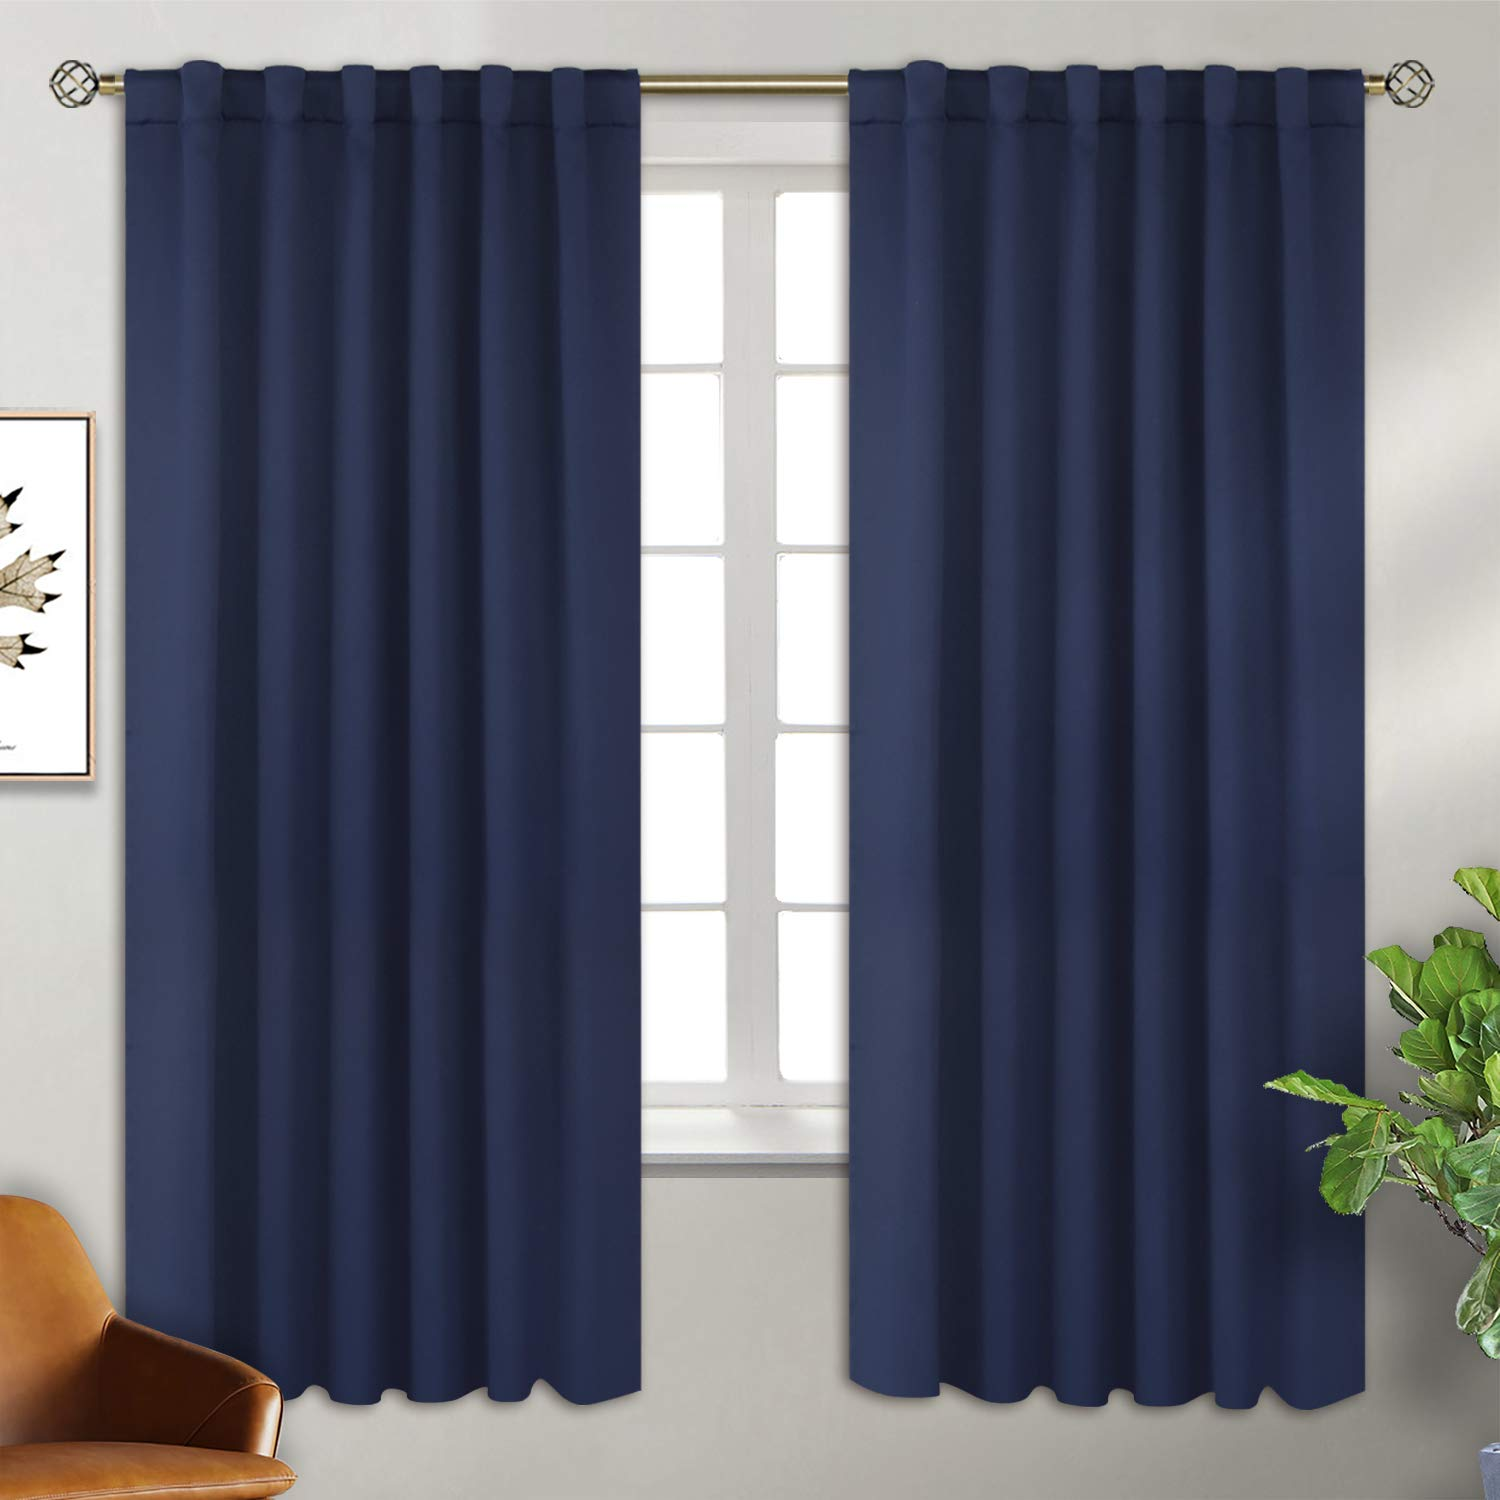 BGment Rod Pocket and Back Tab Blackout Curtains for Bedroom - Thermal Insulated Room Darkening Curtains for Living Room, 2 Window Curtain Panels (52 x 72 Inch, Navy) by BGment